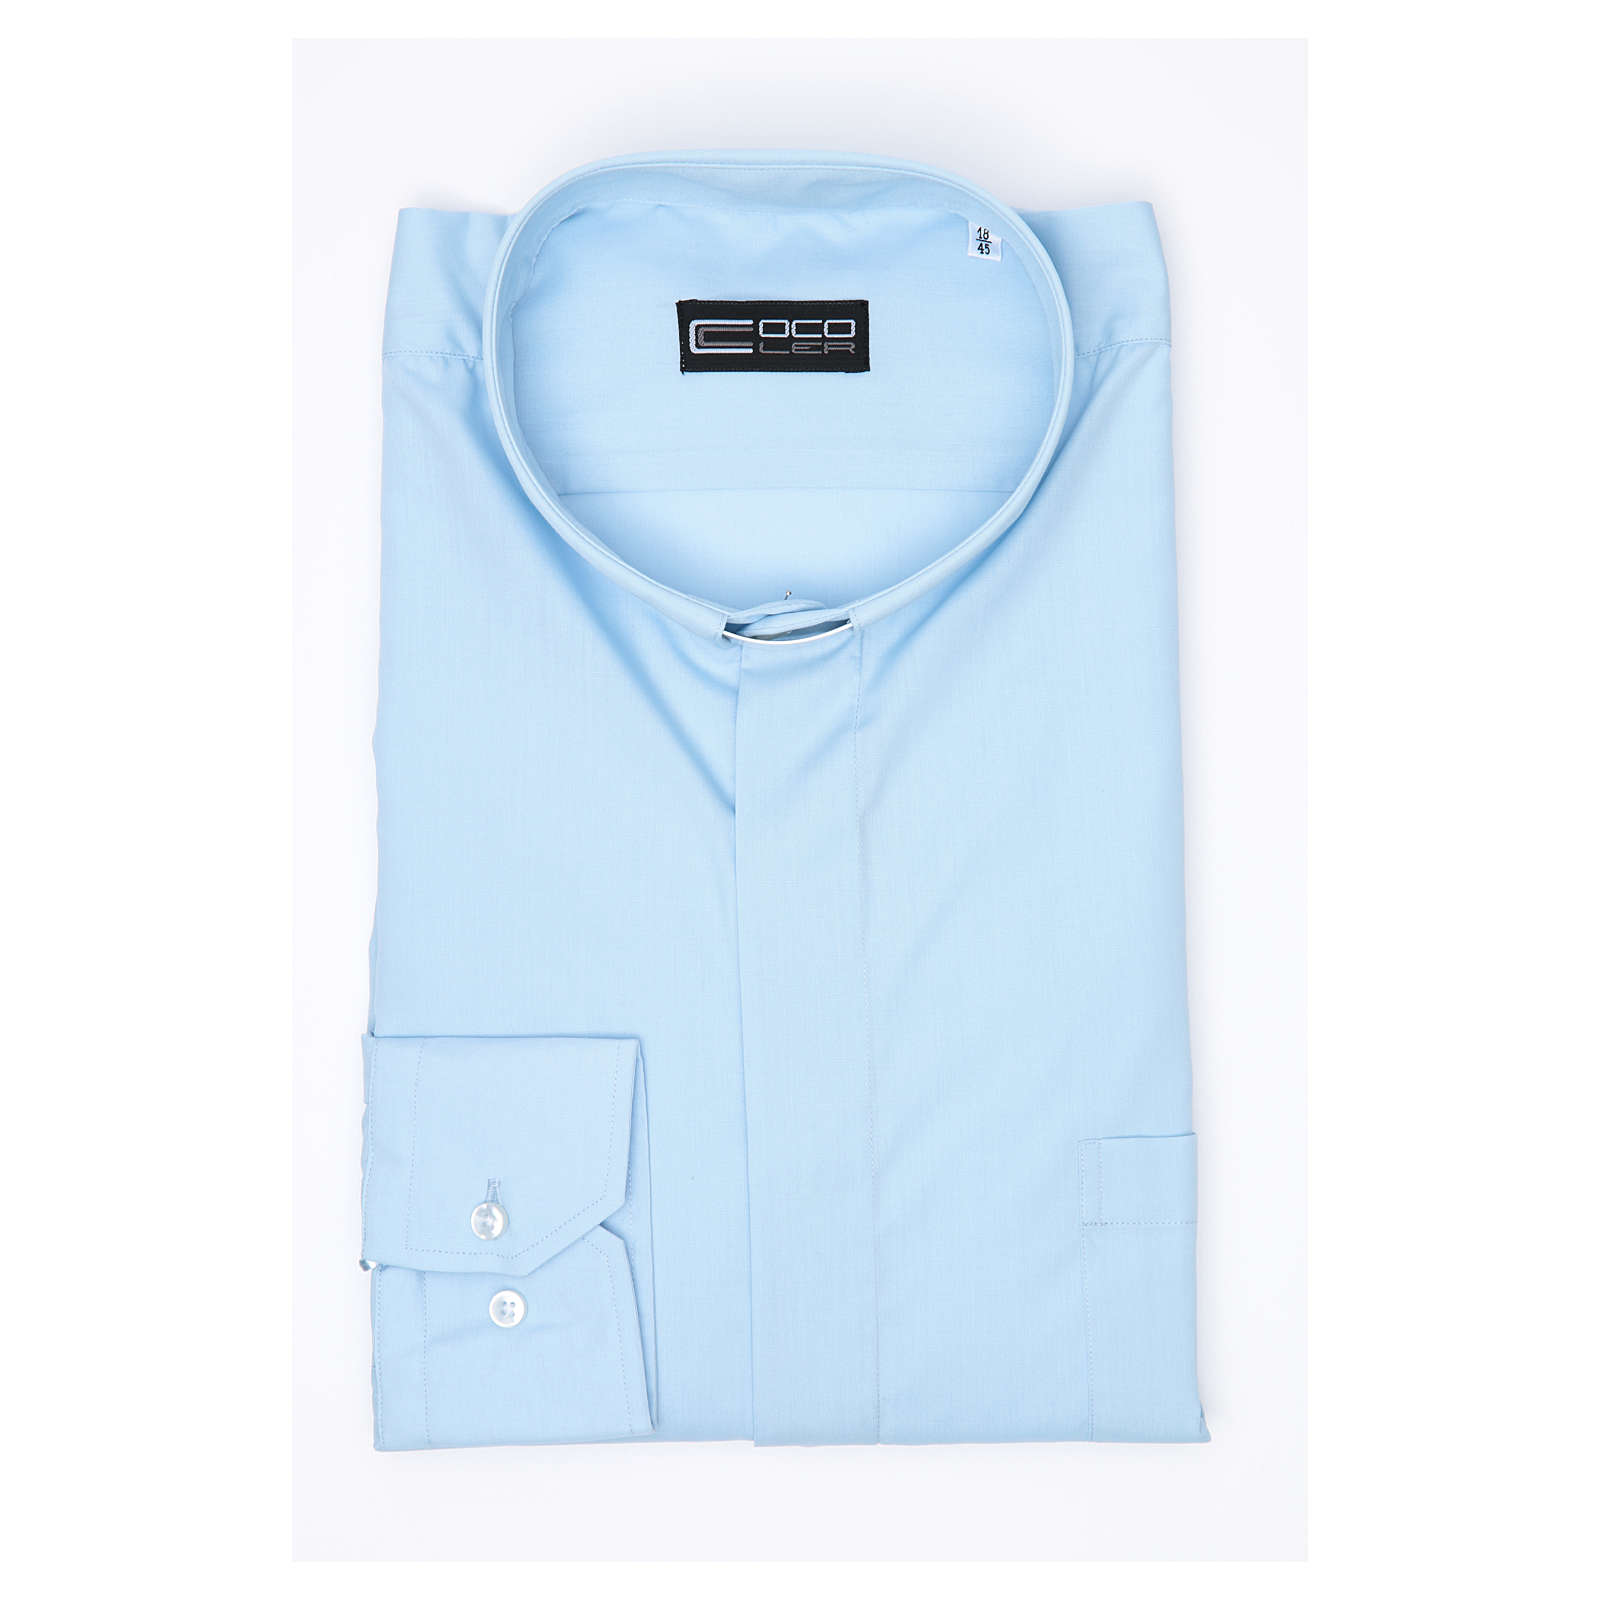 Clergy shirt long sleeves solid colour mixed cotton Light Blue 4